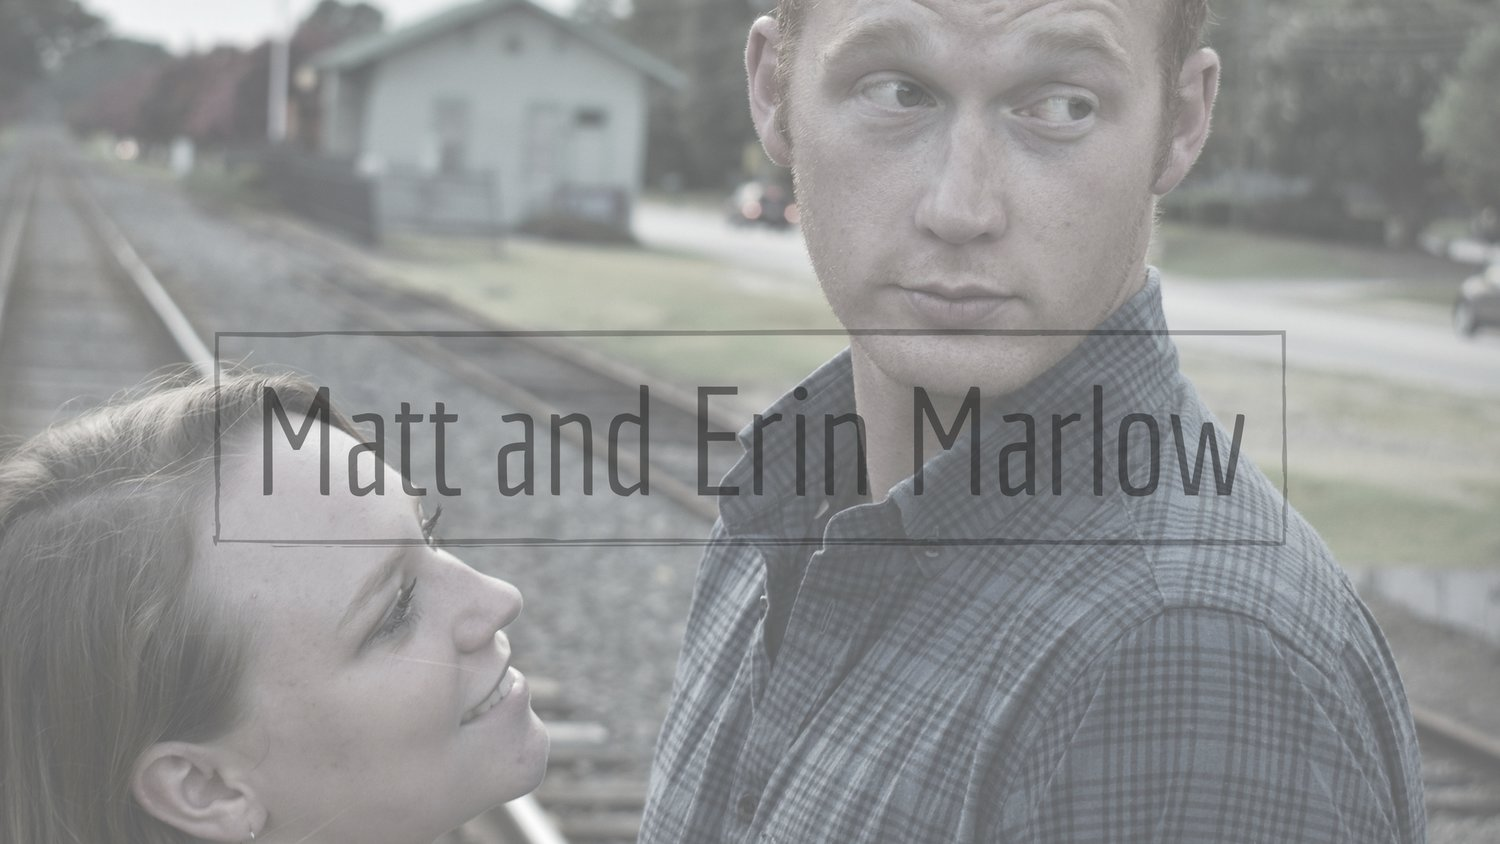 Matt and Erin Marlow